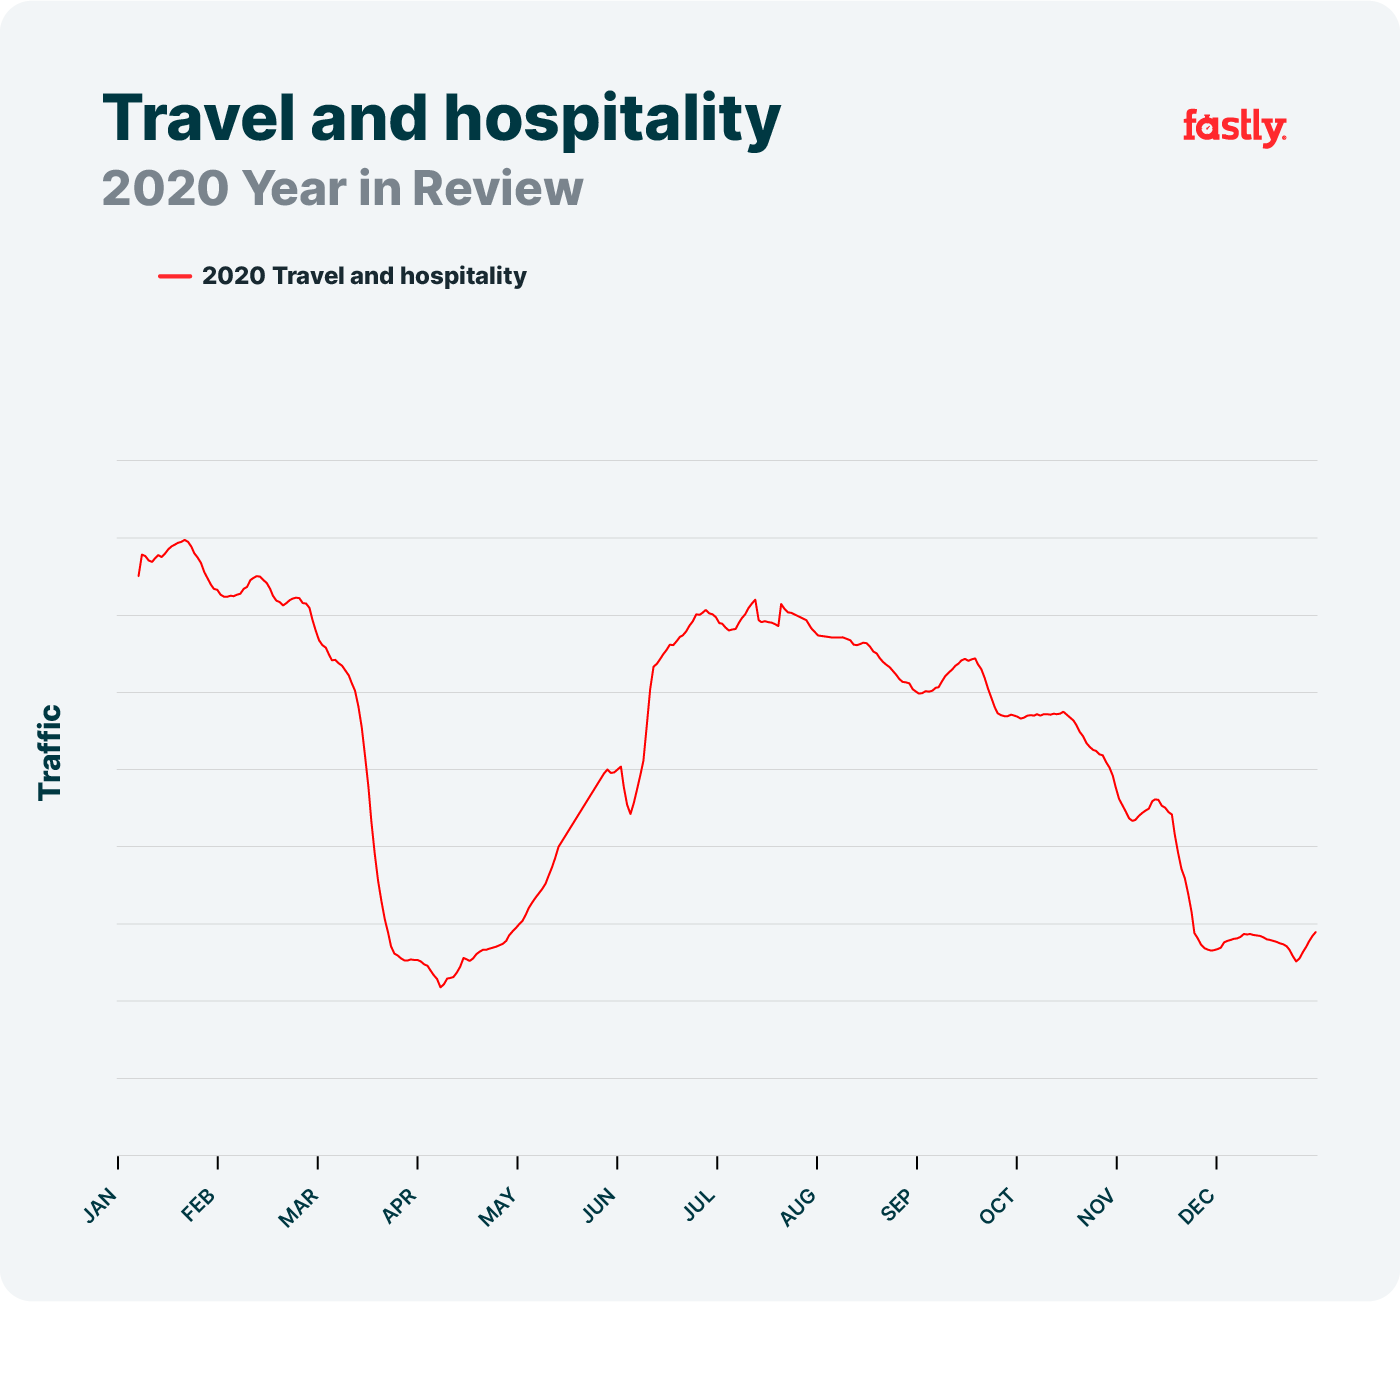 Travel and hospitality network trends 2020